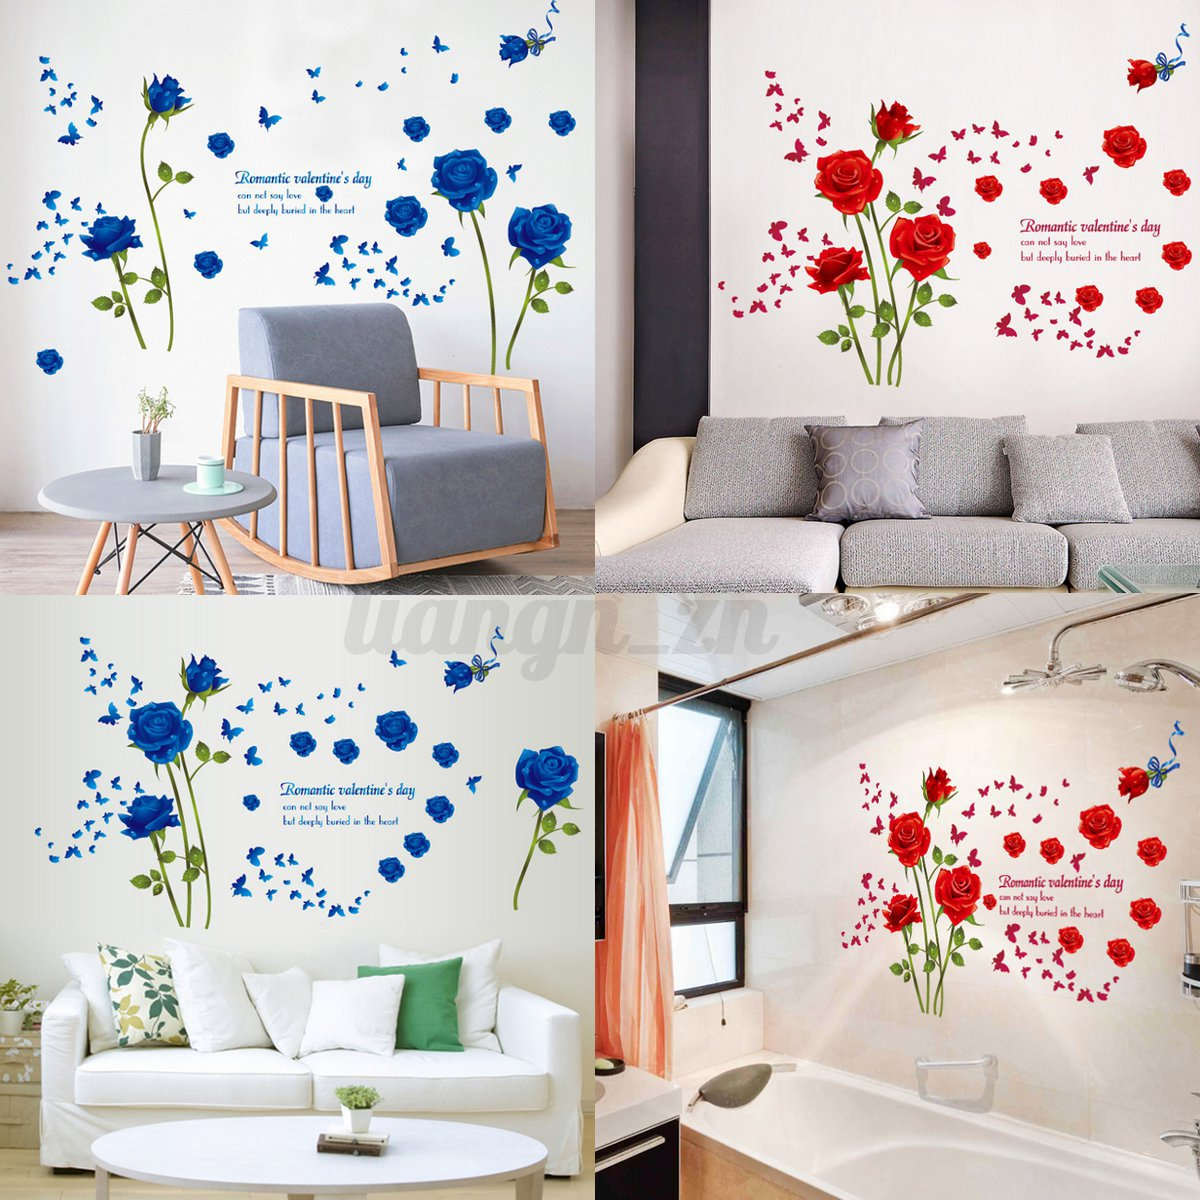 3d adh sif sticker autocollant fleur rose romantique en for Decor mural adhesif